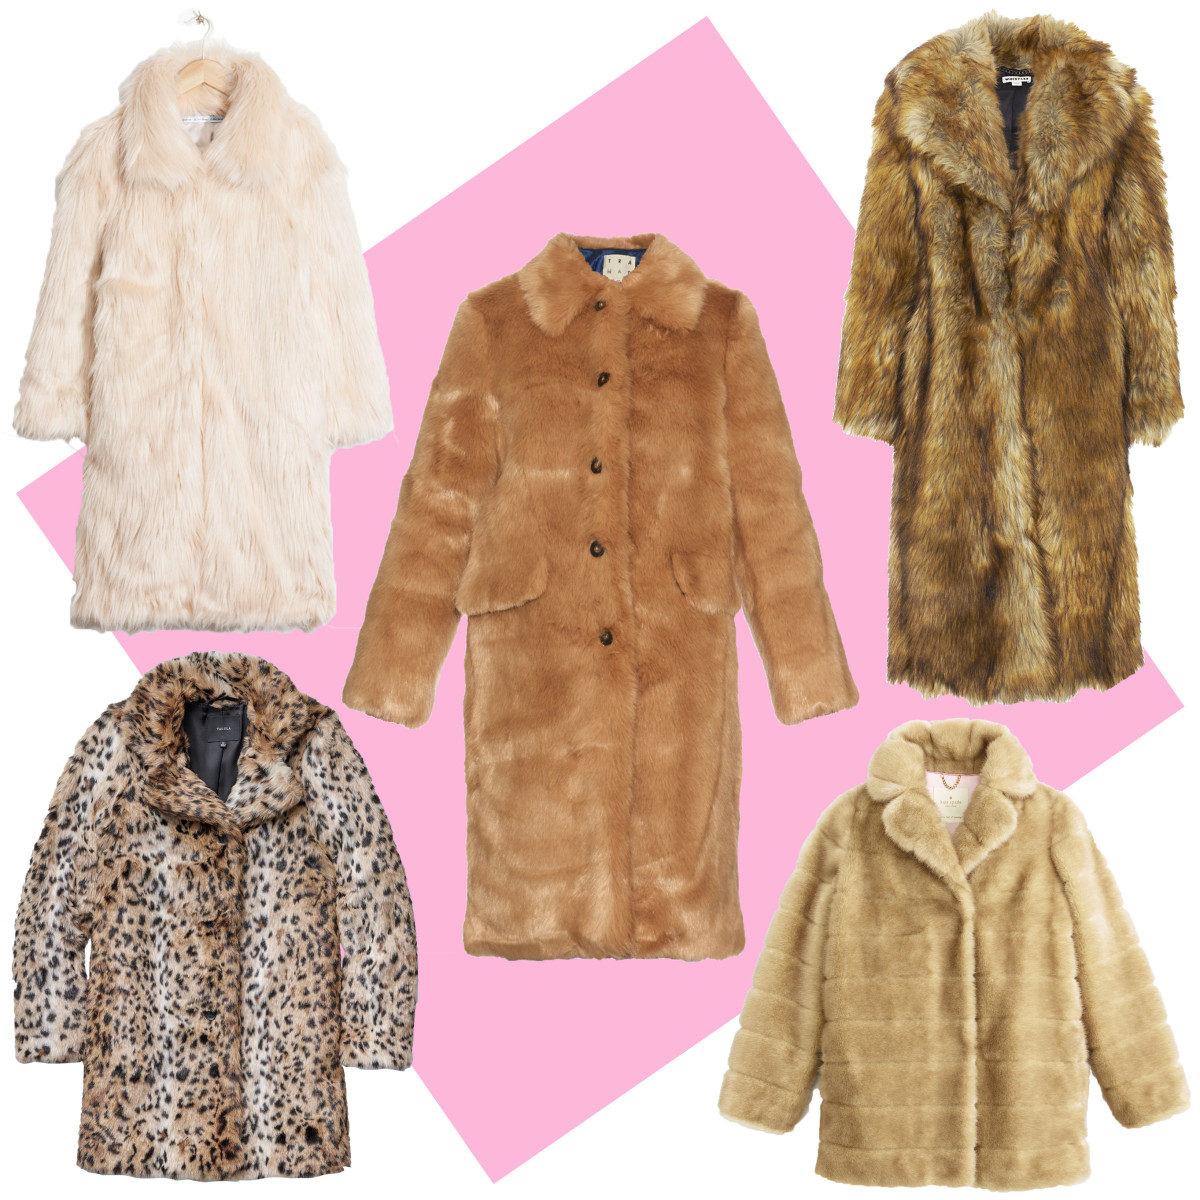 TOP LEFT: & Other Stories faux fur coat, $275, available at & Other Stories; CENTER: Trademark faux fur coat, $698, available at Trademark; TOP RIGHT: Whistles wolfie faux fur coat, $560, available at Whistles; BOTTOM LEFT: Aritzia Beckledge coat, $198, available at Aritzia; BOTTOM RIGHT: Kate Spade blonde mink coat, $798, available at Kate Spade.